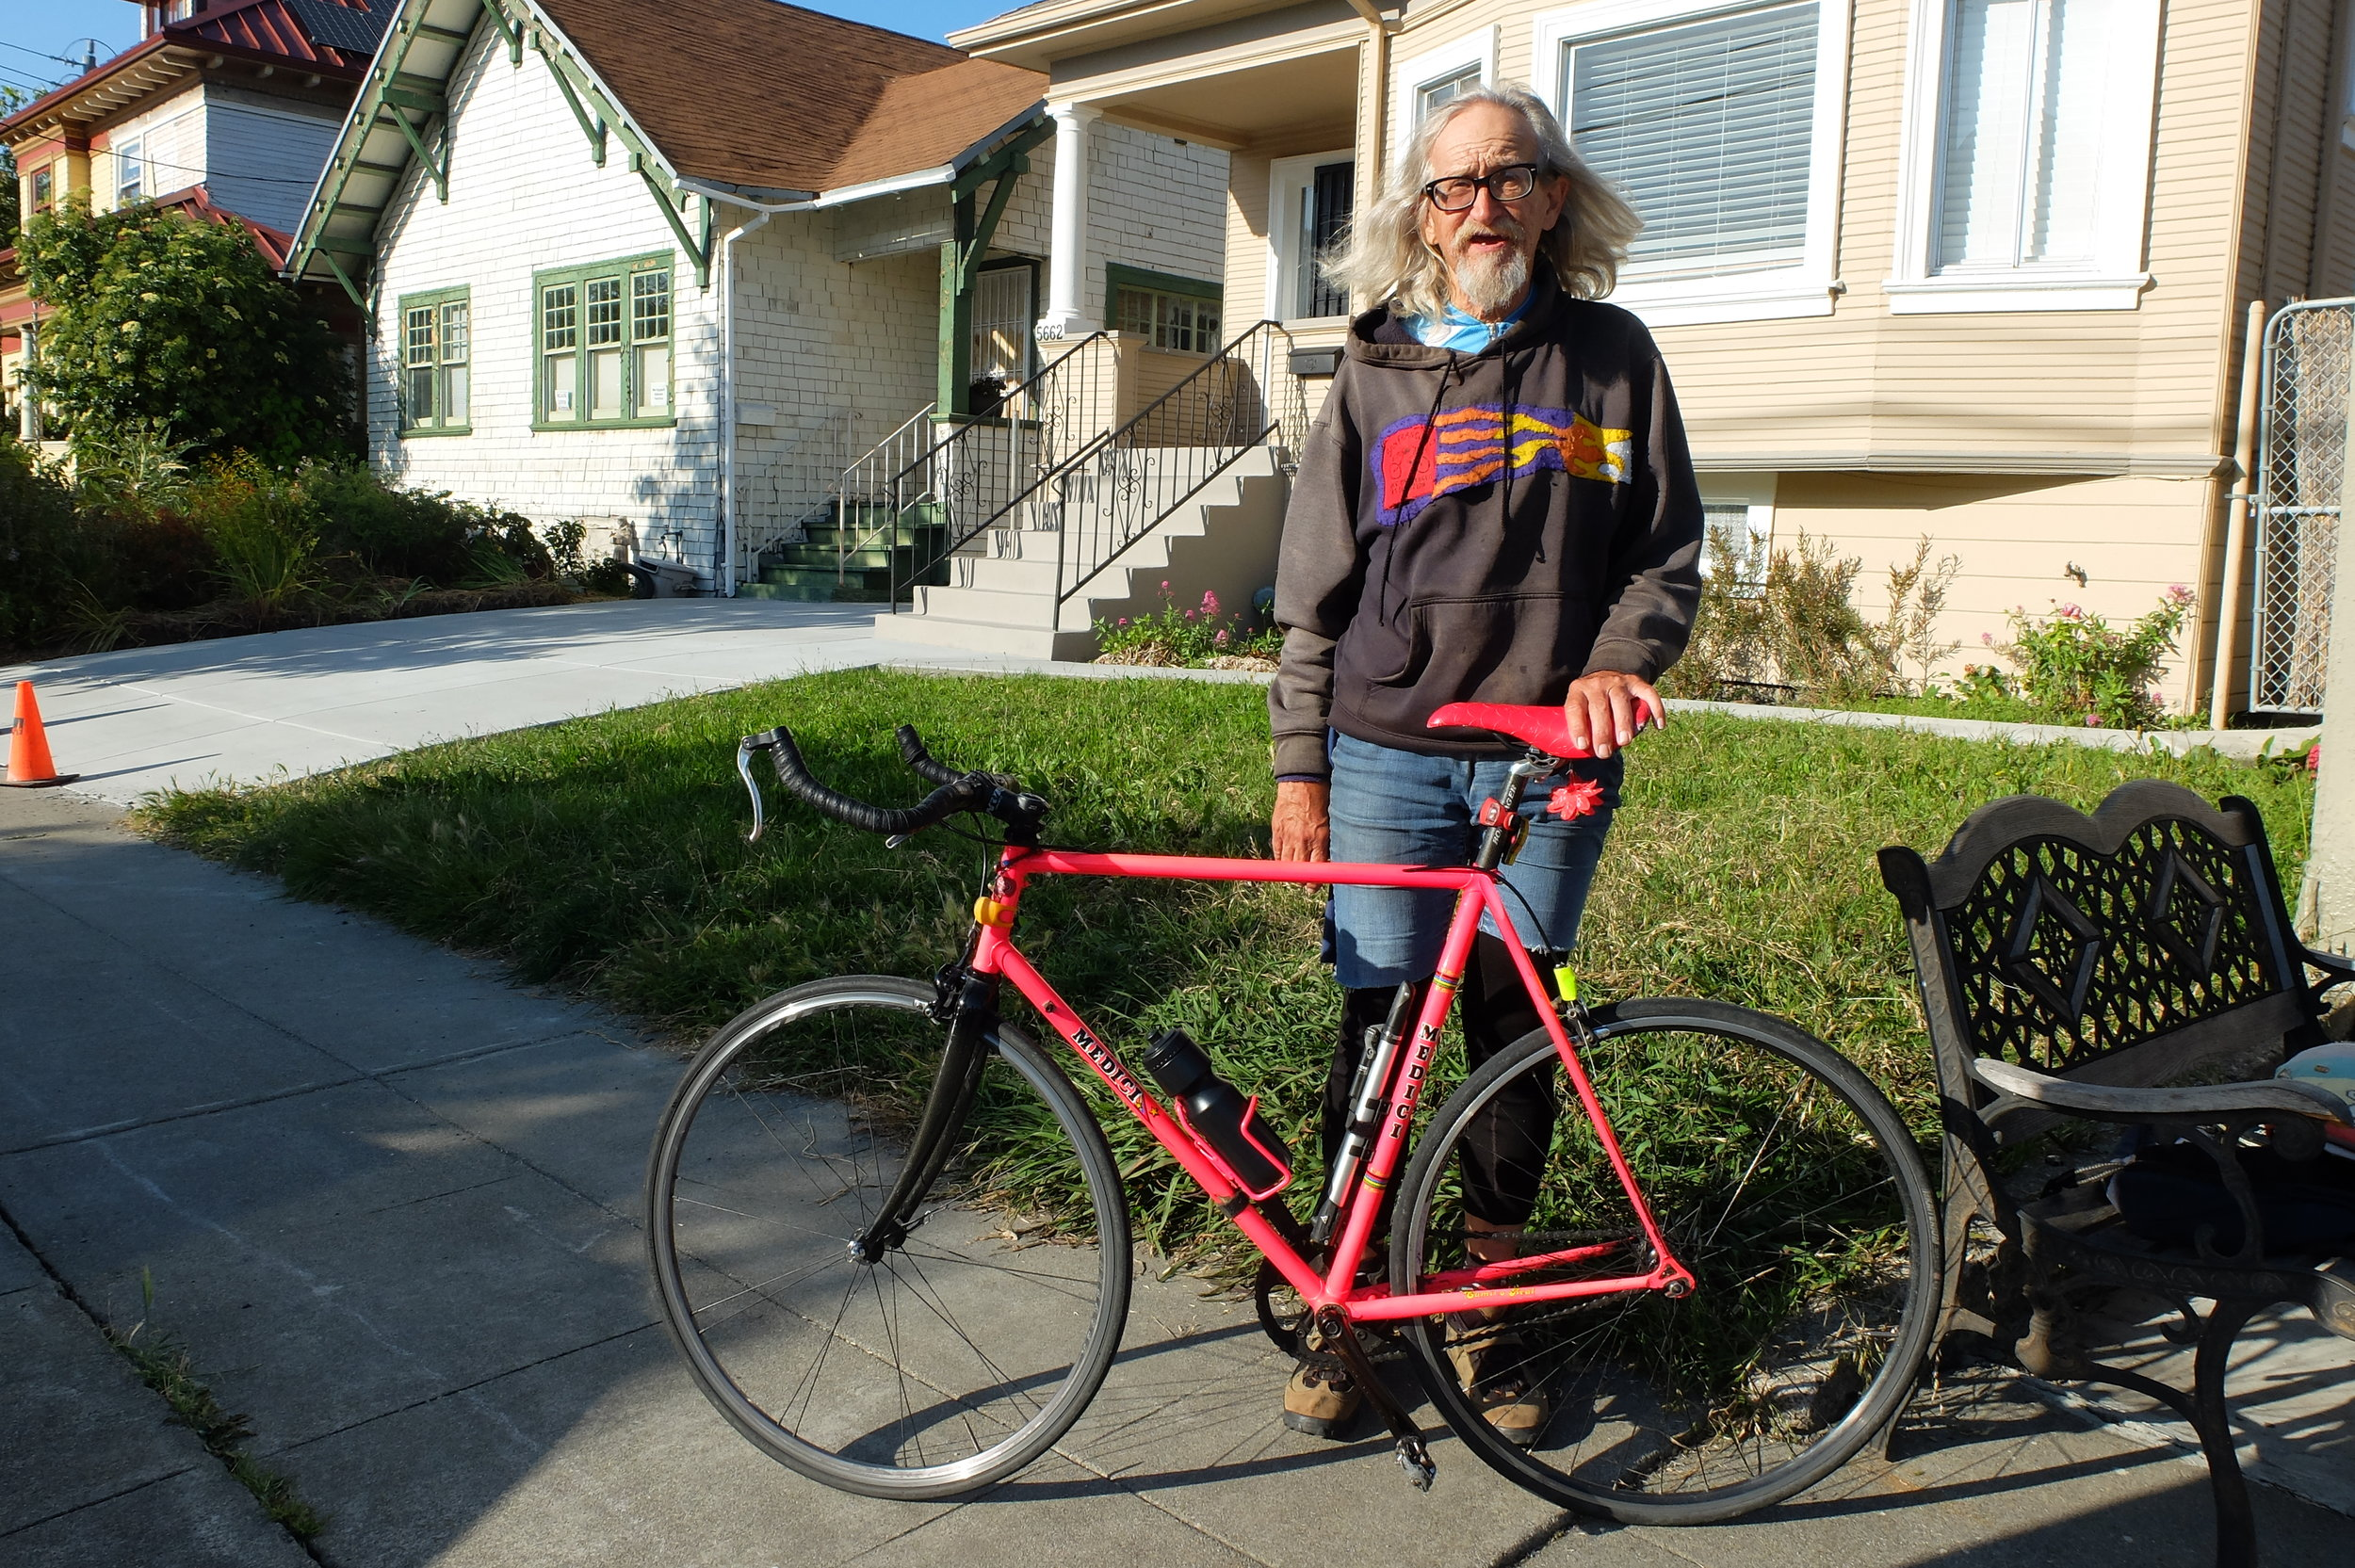 Roger, a retired bike messenger, stands with his pink Medici fixed gear bicycle.